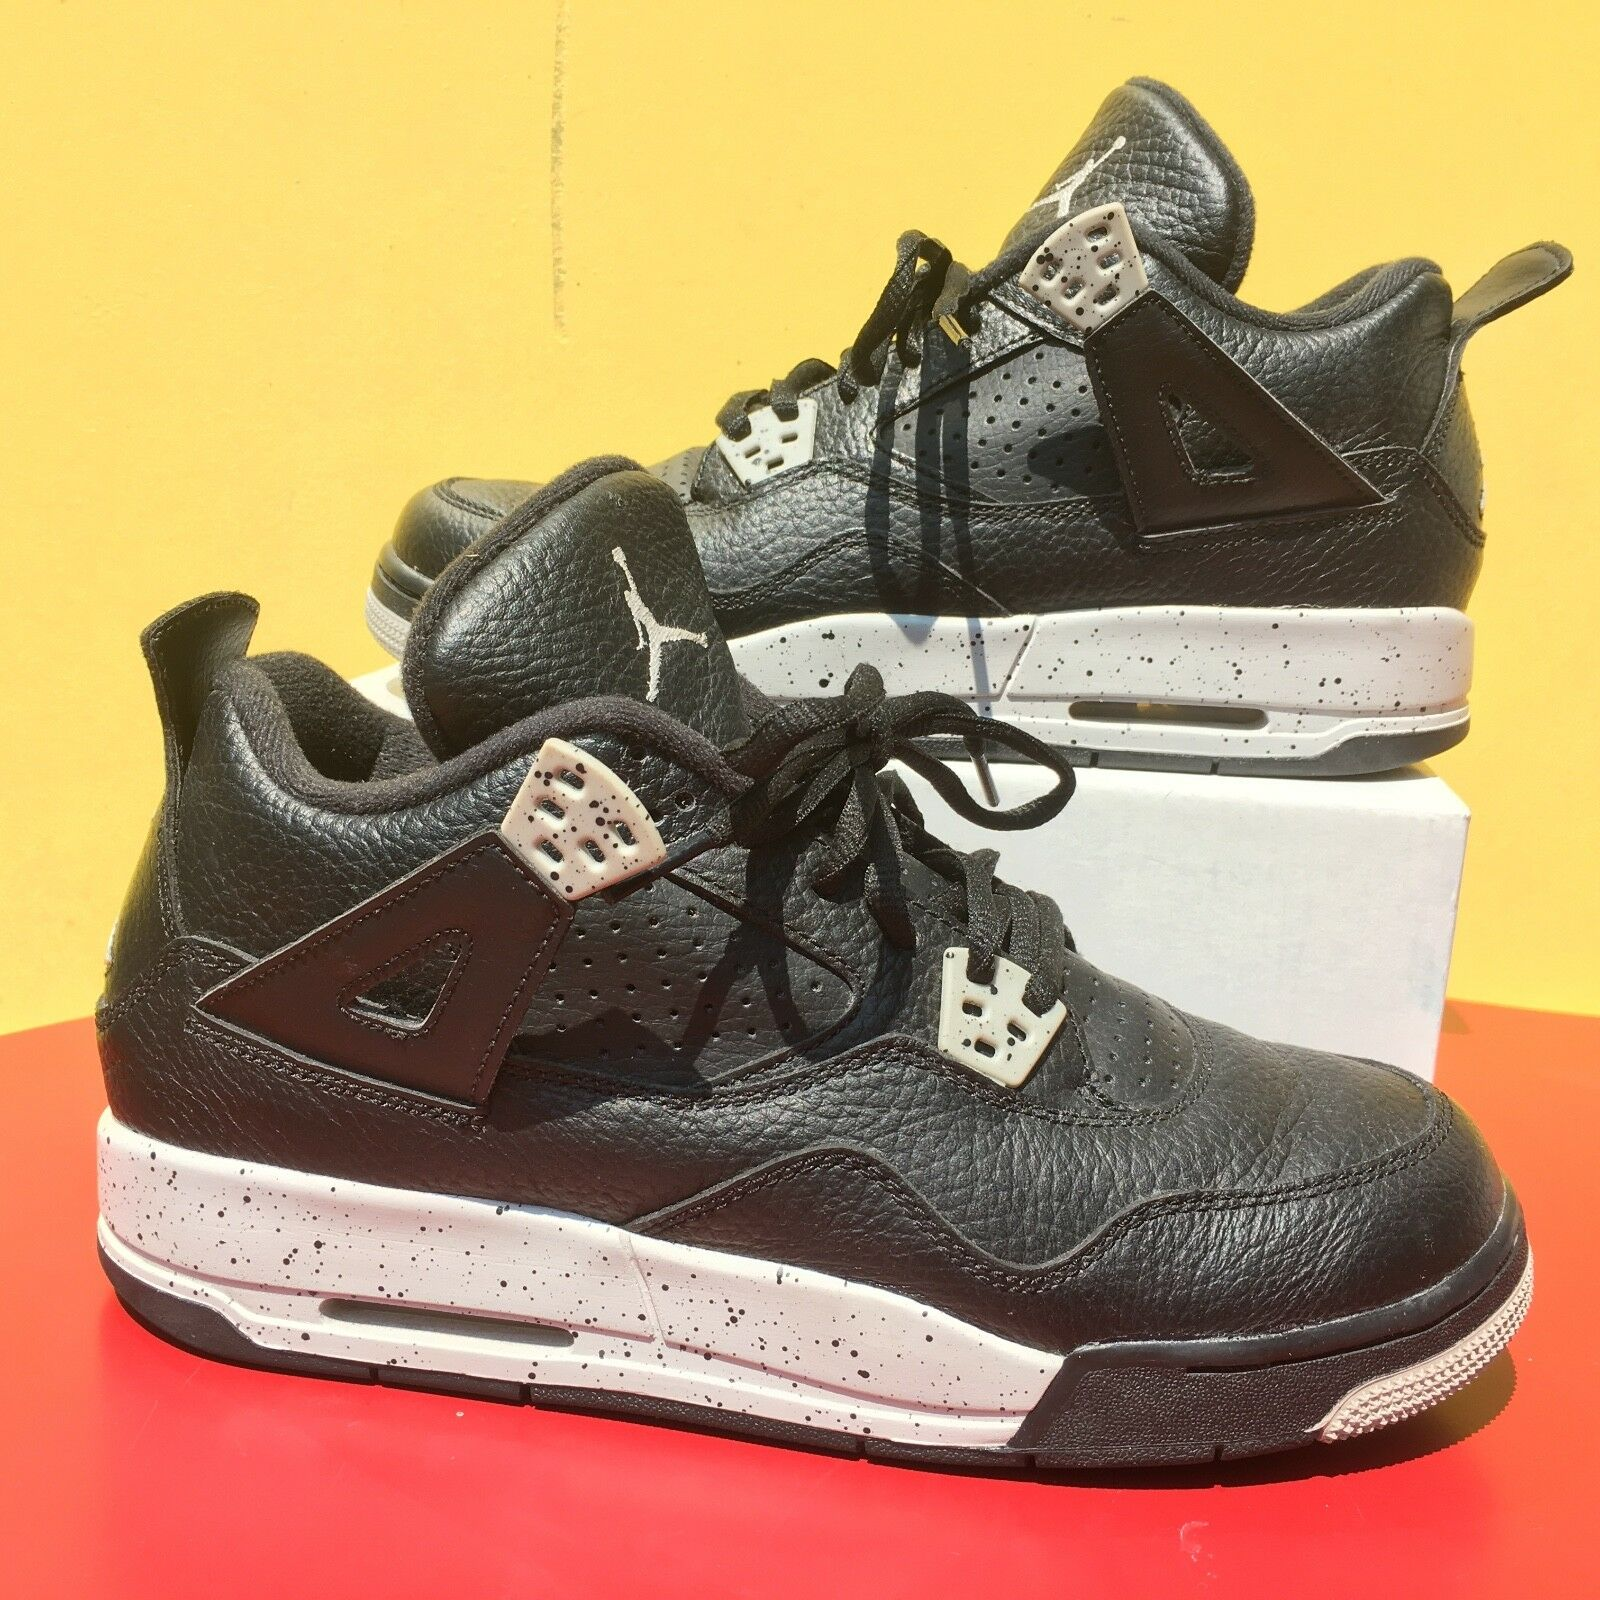 d7c1b97acdb2 2014 Air Jordan 4 IV Oreo 7y Black Black Black Cement Basketball Shoes  bf6475